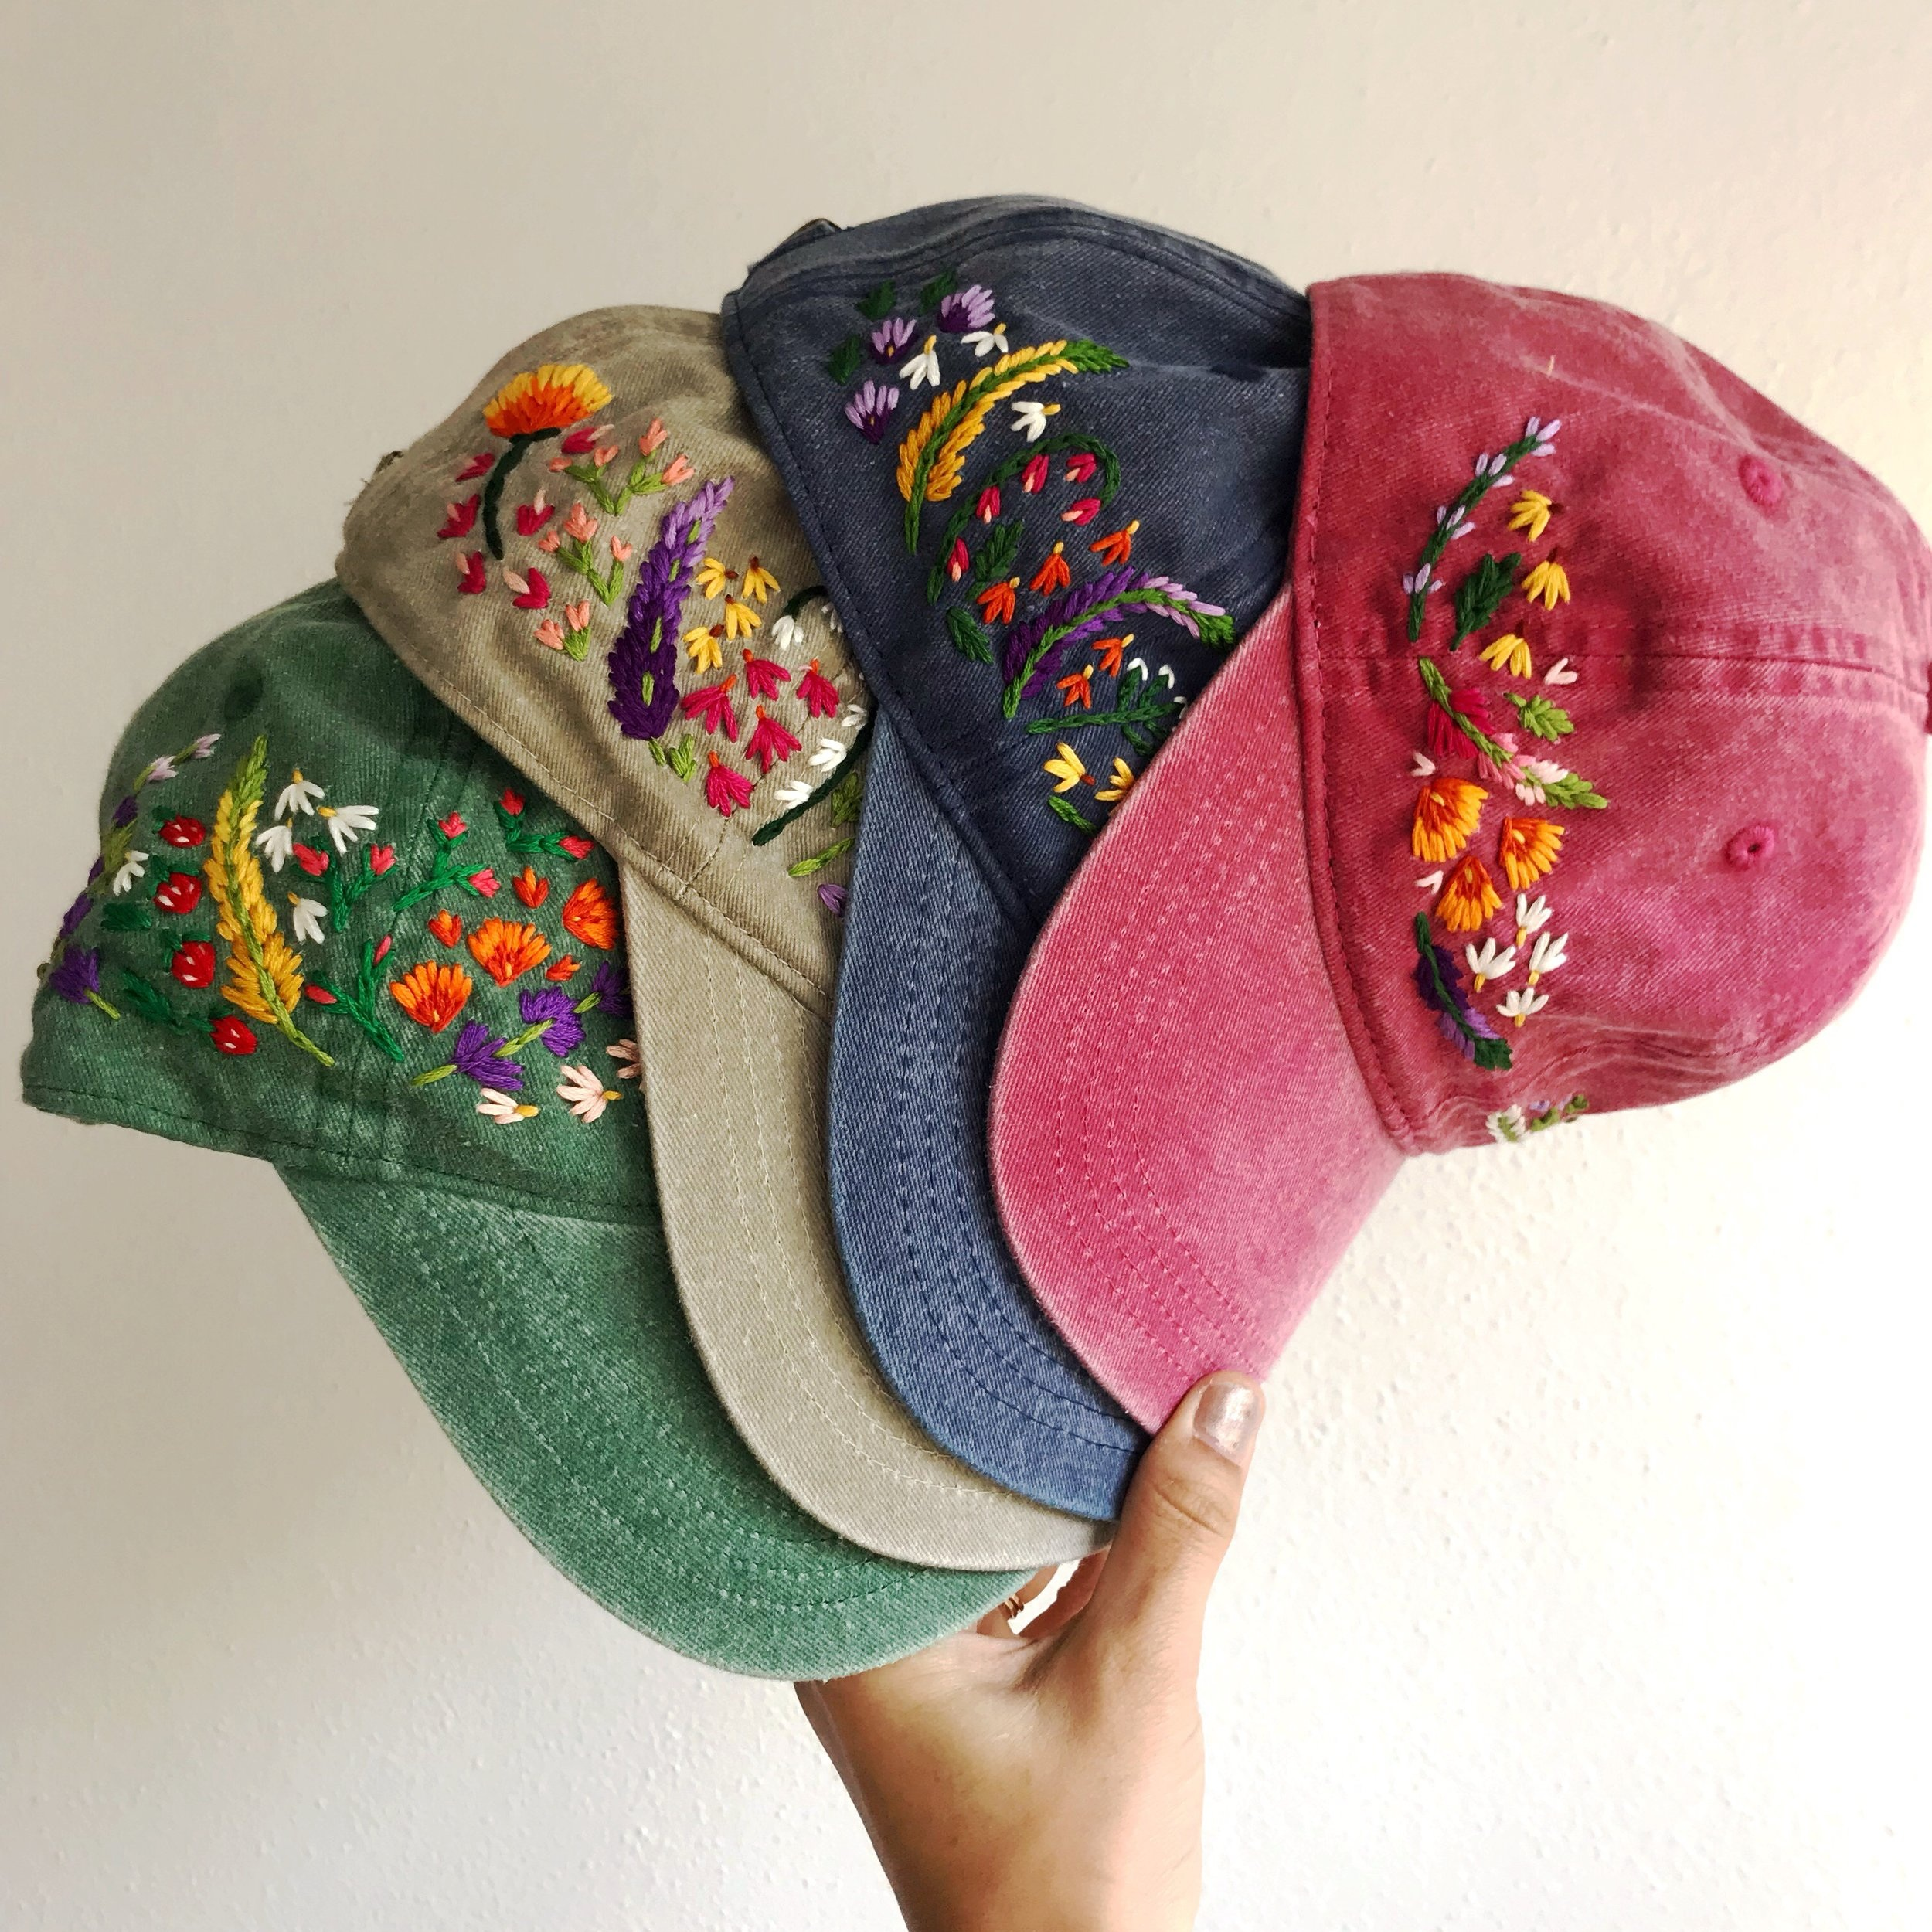 Hats - I create one of a kind hand embroidered hats under the name Mire Made Embroidery. Take a look at some of the cuties I've created.